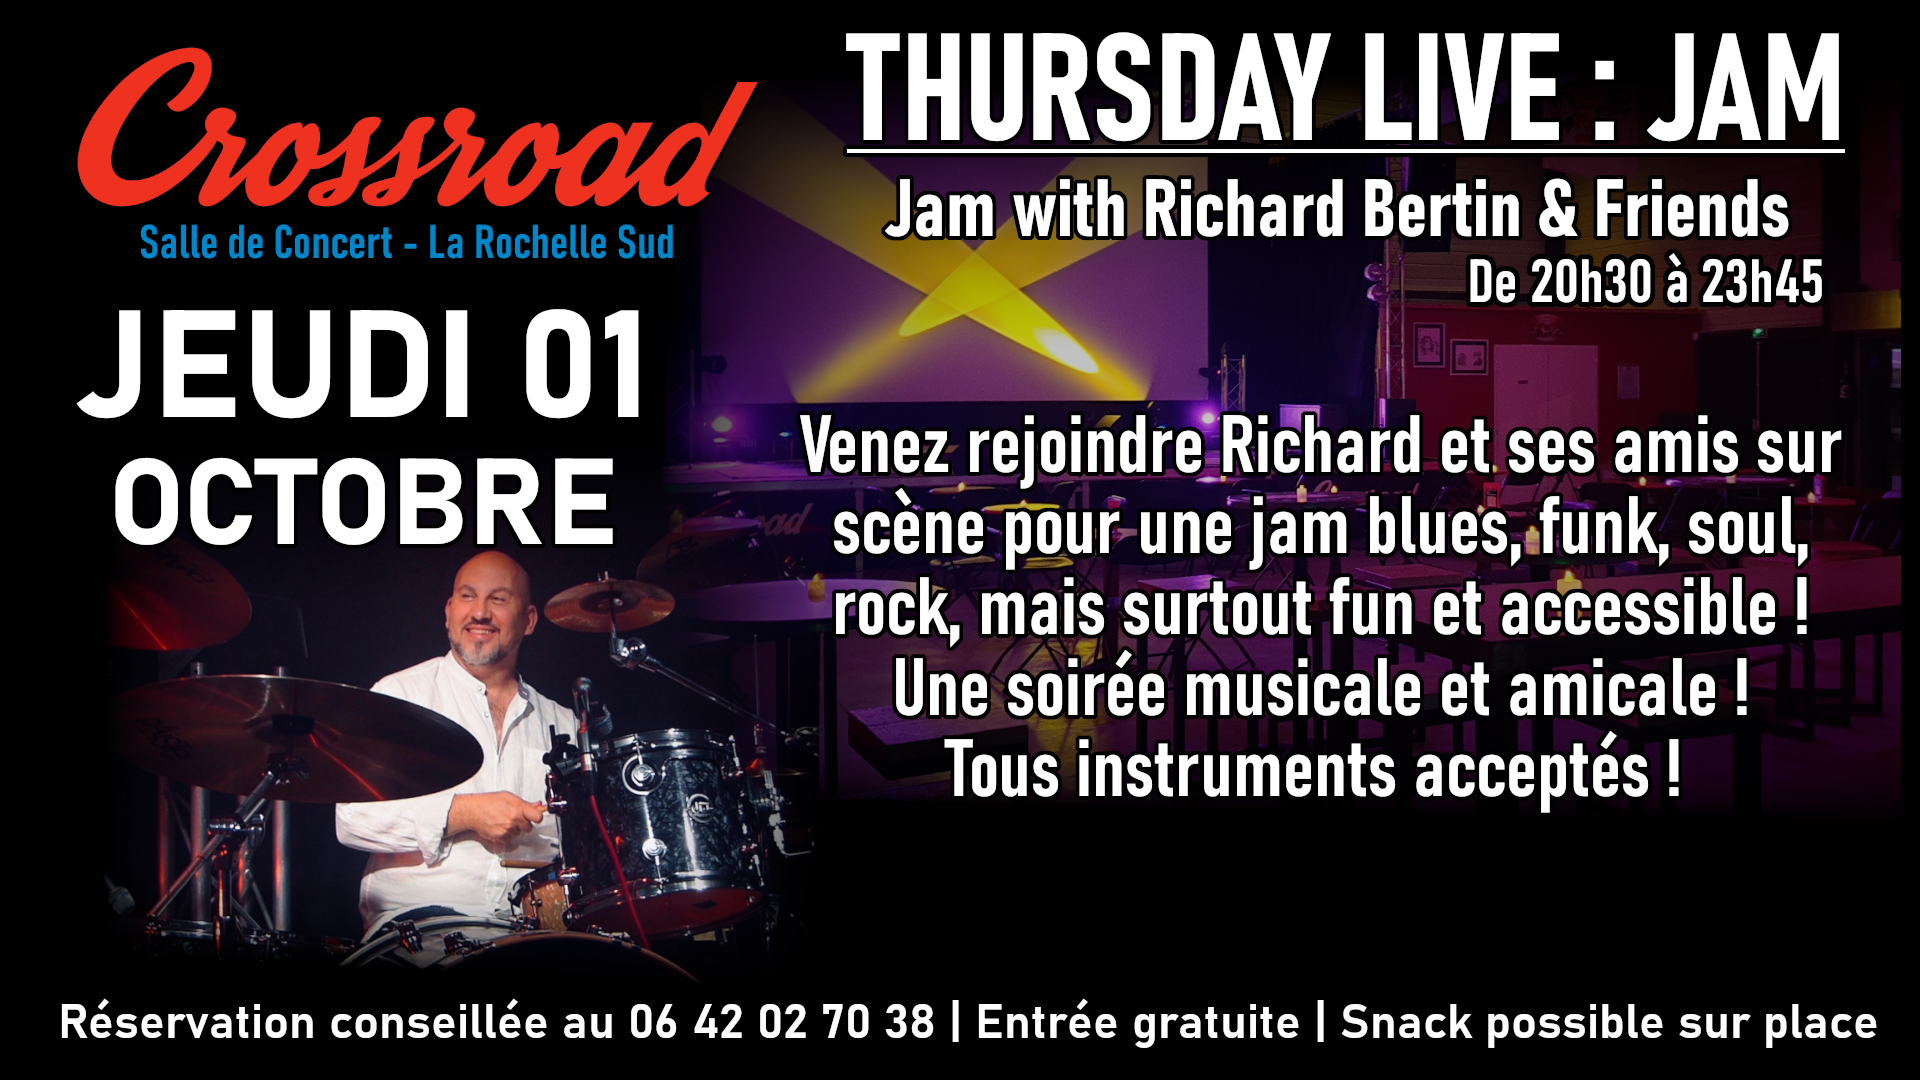 Thursday Live : JAM avec Richard Bertin & Friends